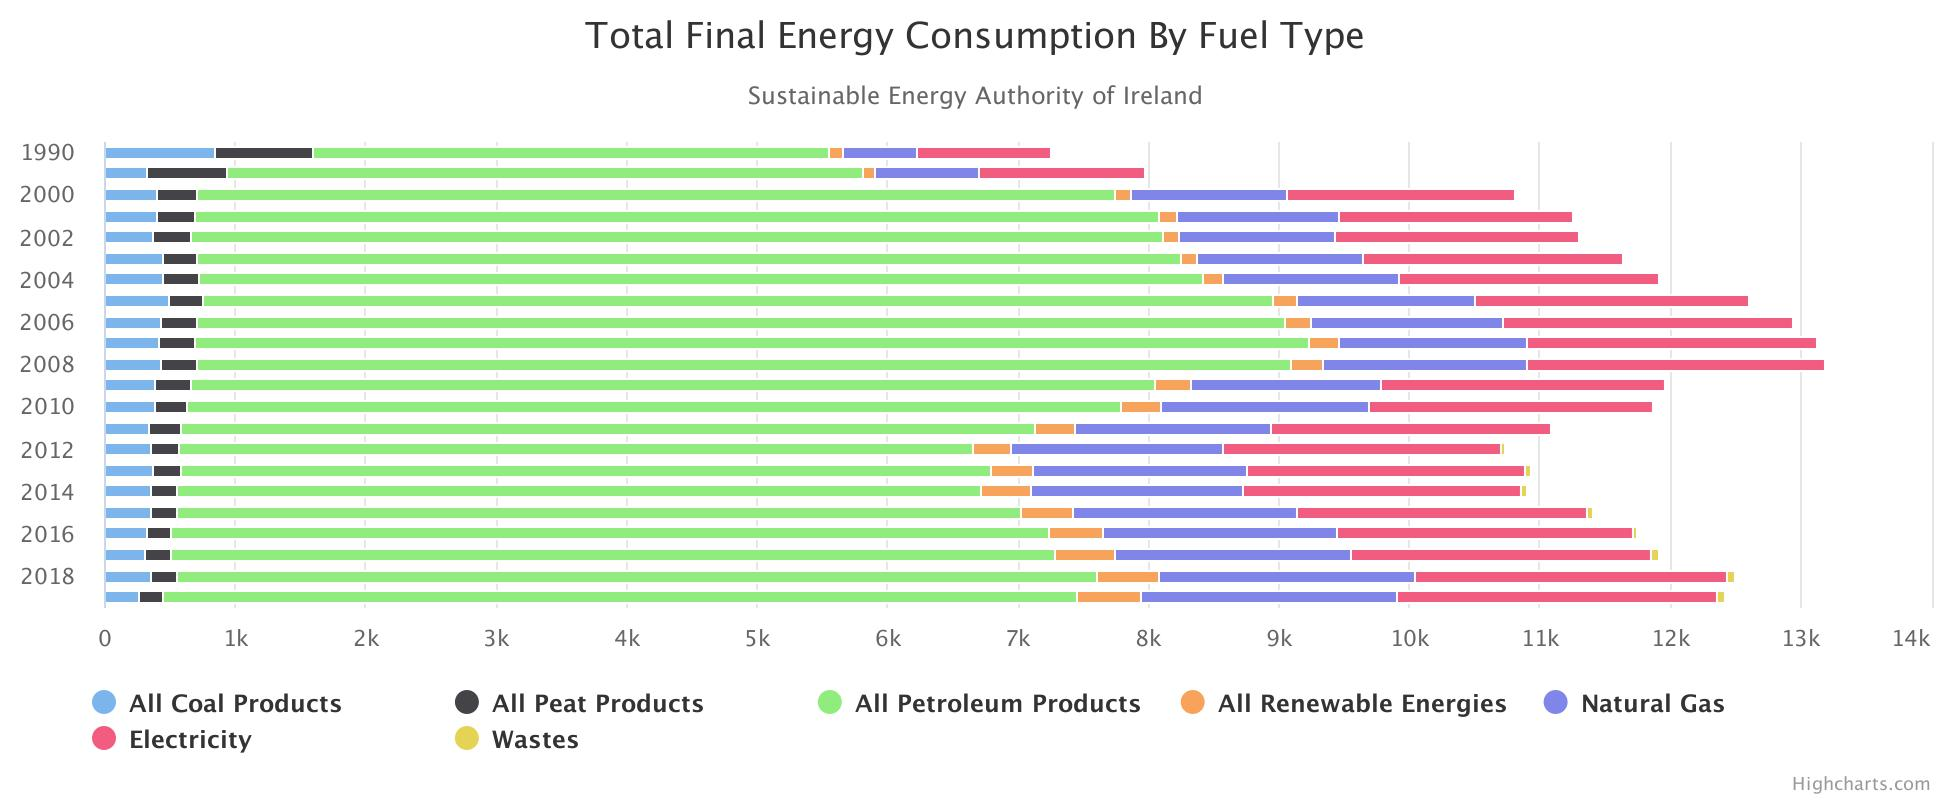 TOTAL FINAL ENERGY CONSUMPTION BY FUEL TYPE